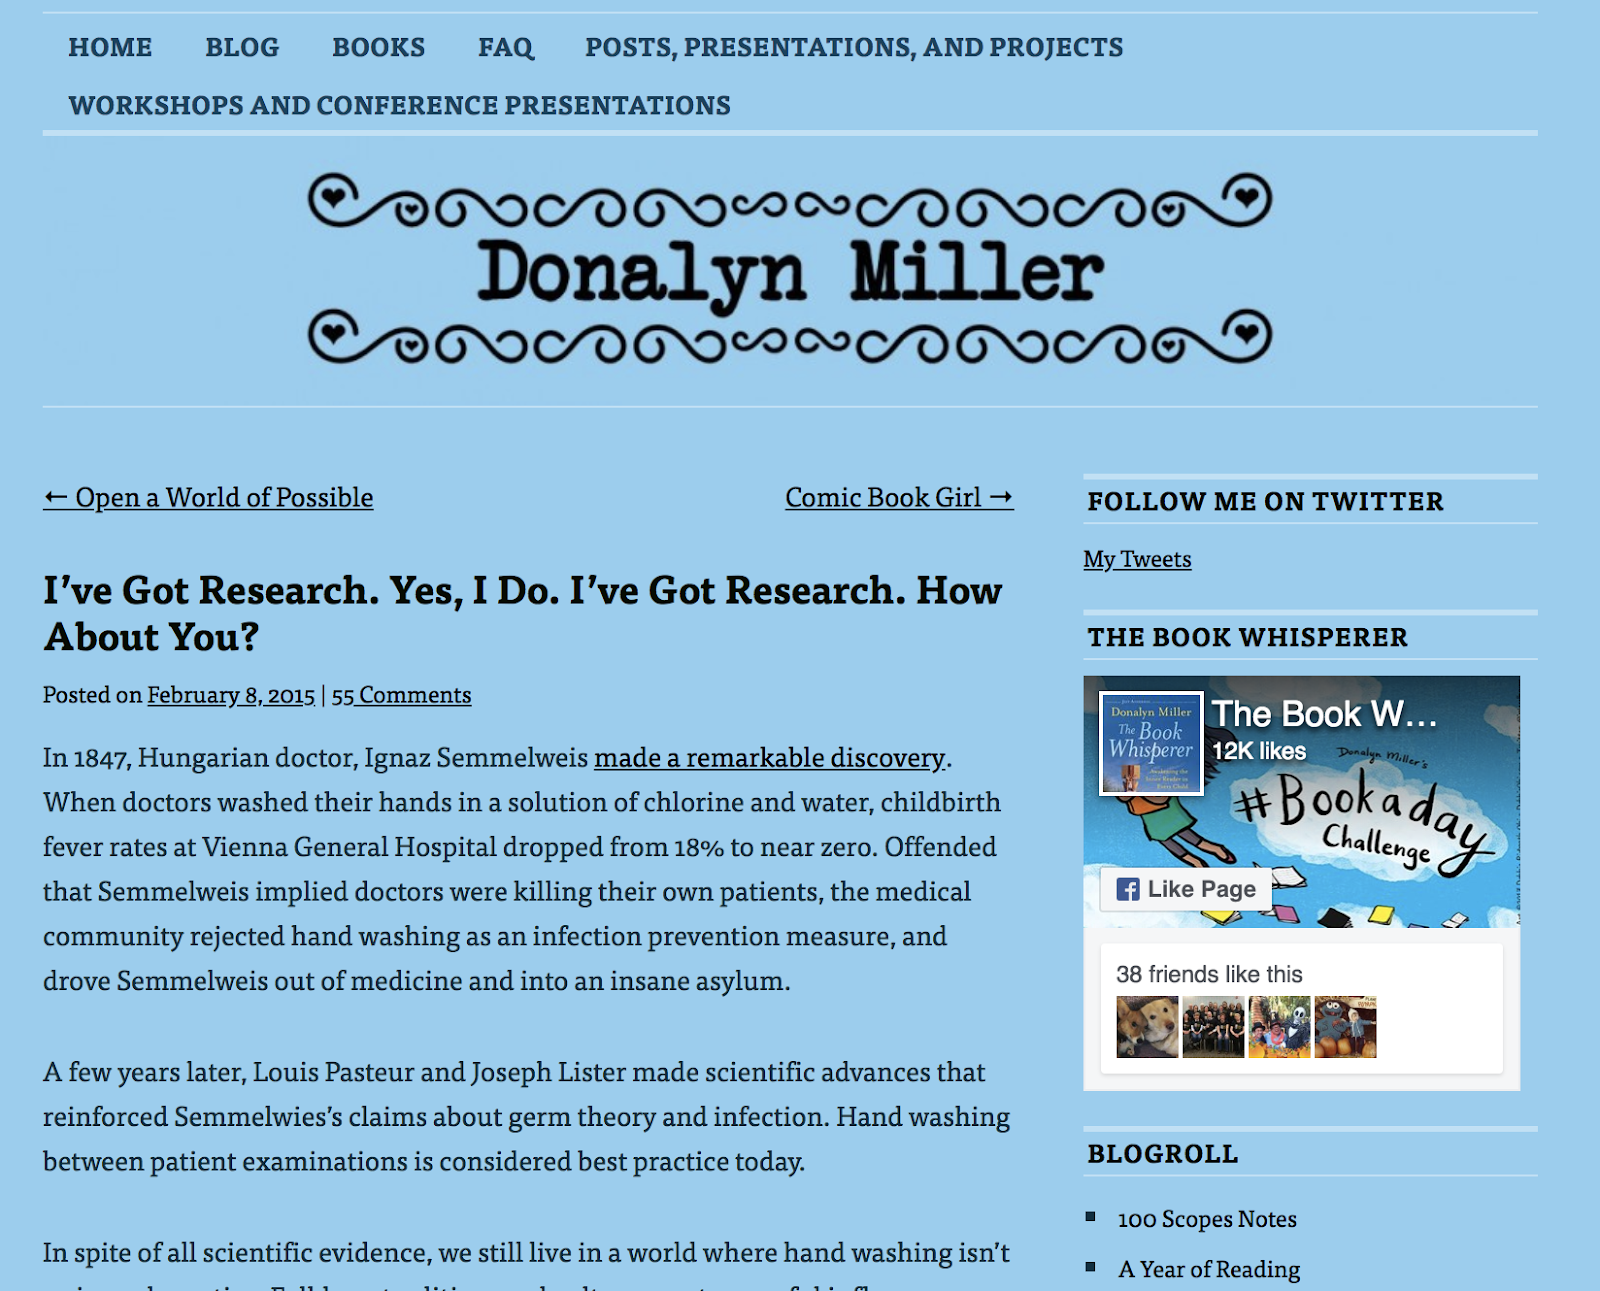 Research on the Power of Reading curated by Donalyn Miller